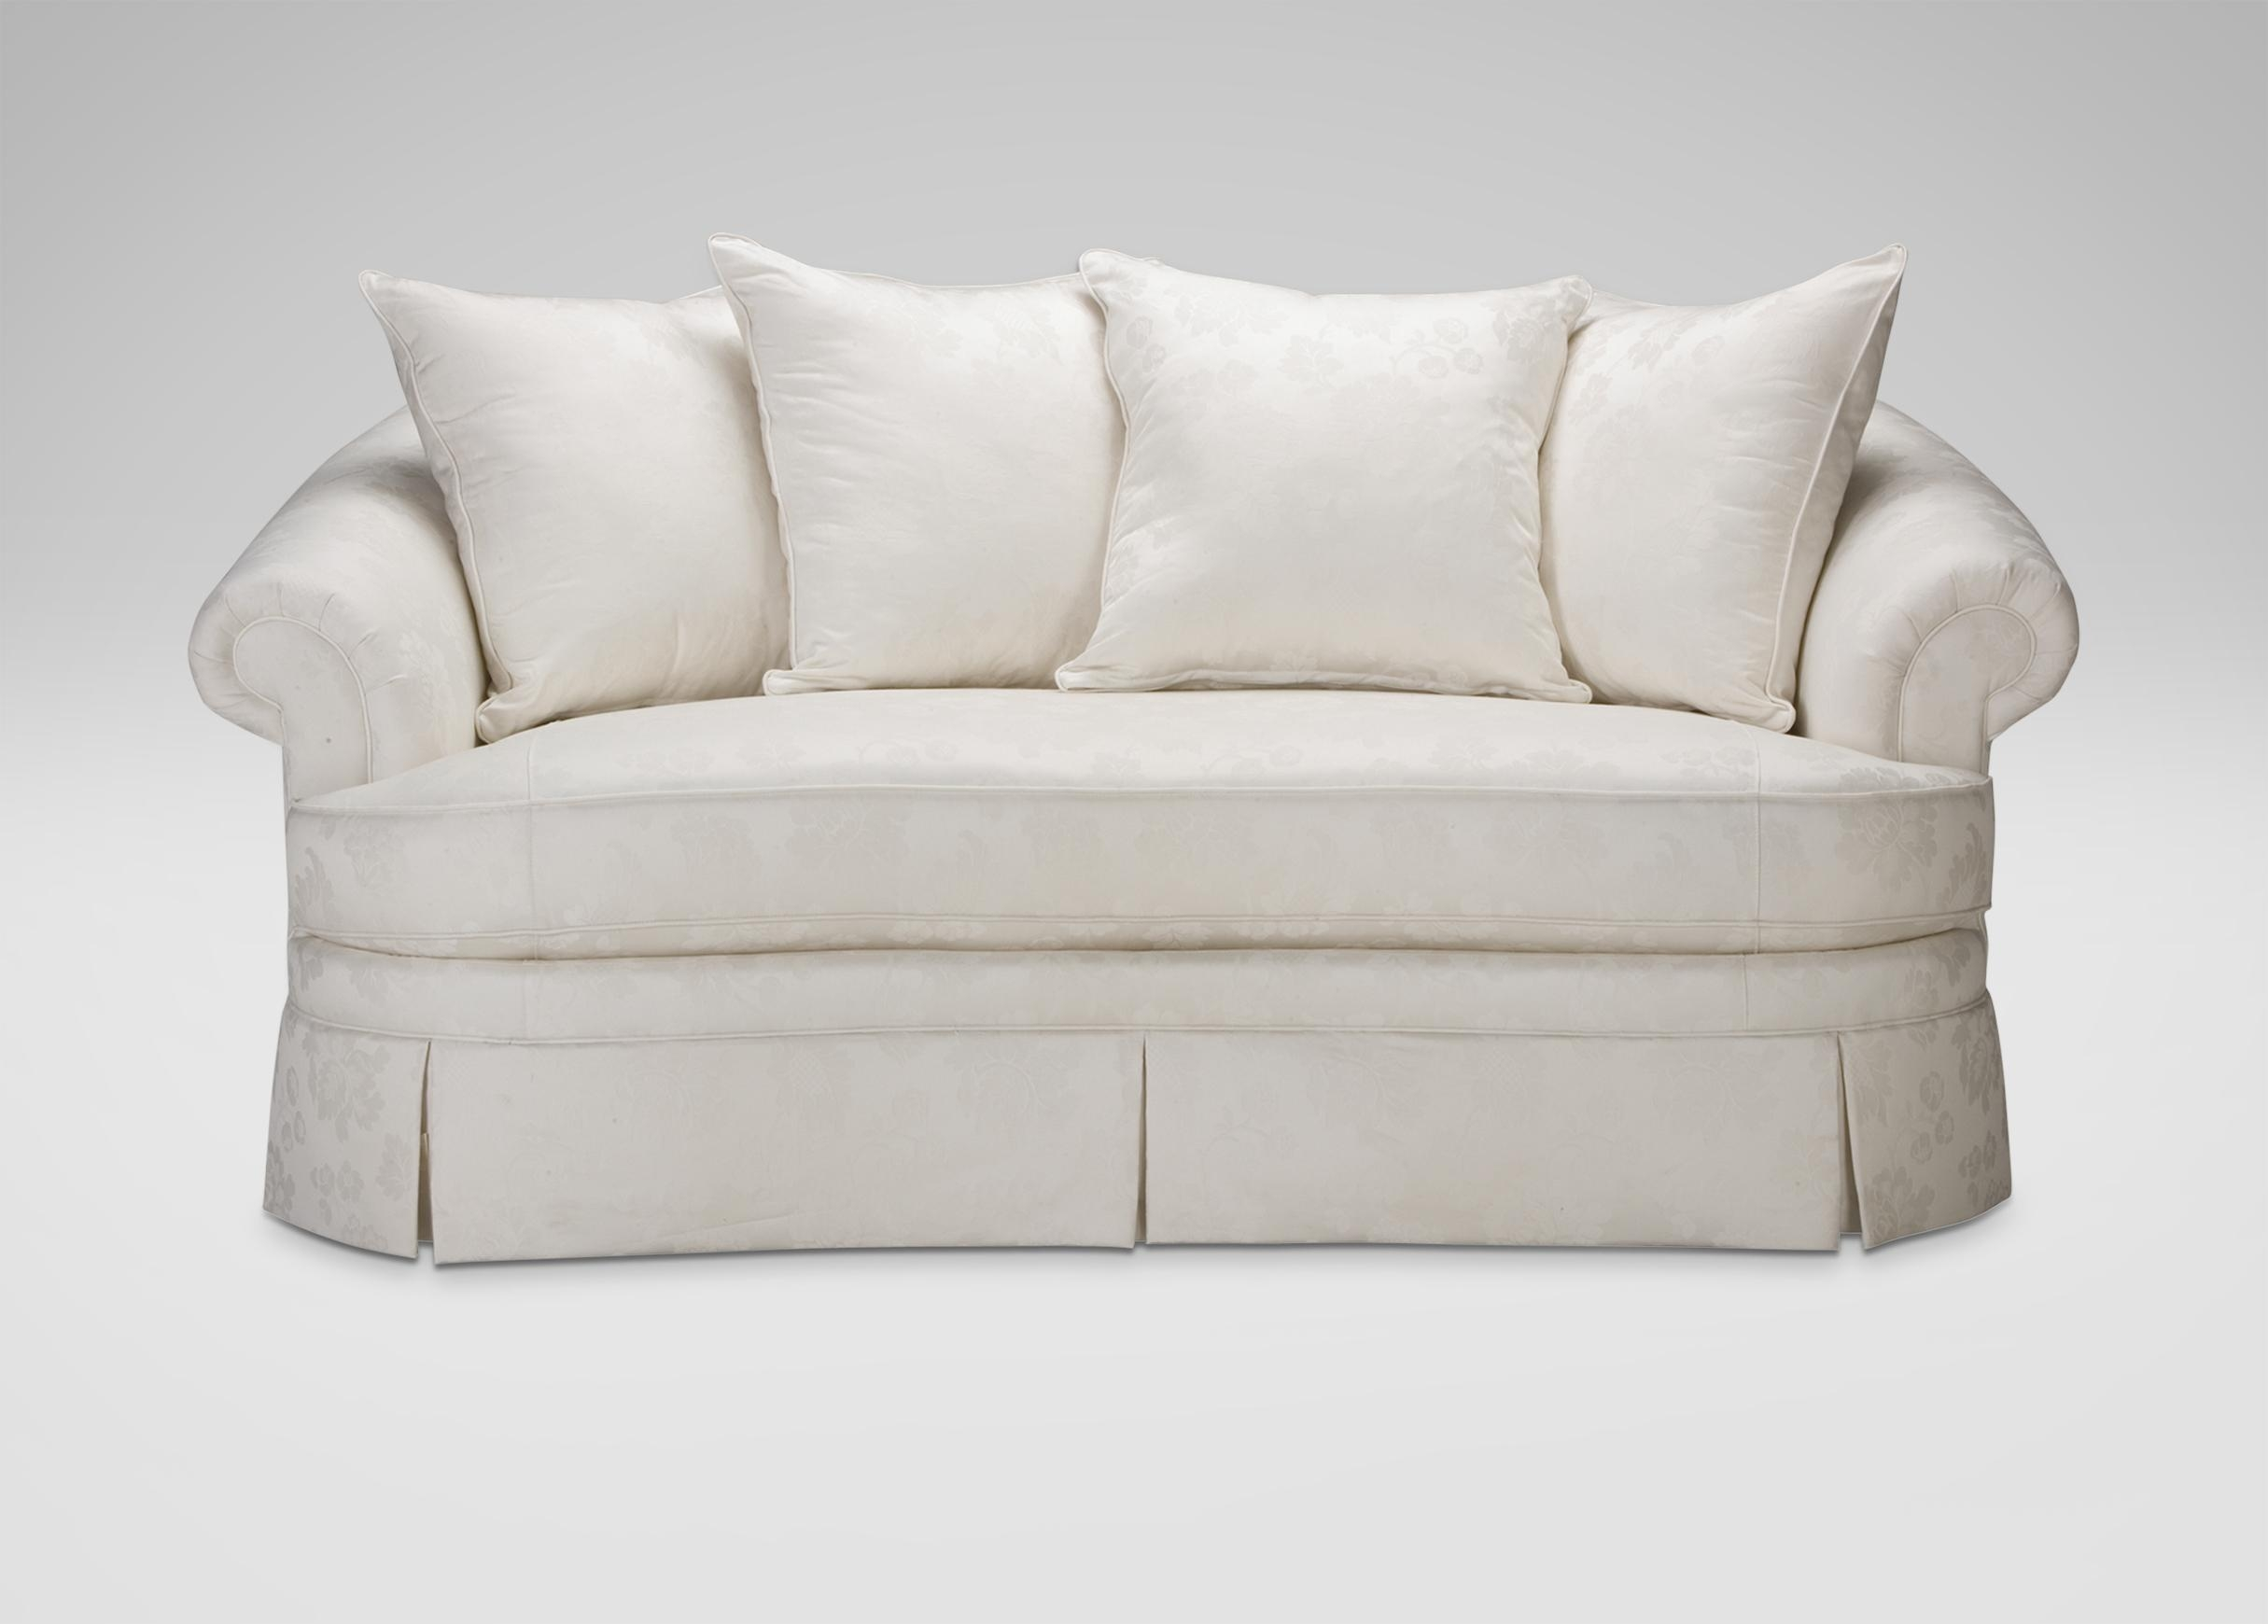 Paris Bench Cushion Sofa | Sofas & Loveseats With Bench Cushion Sofas (View 3 of 20)